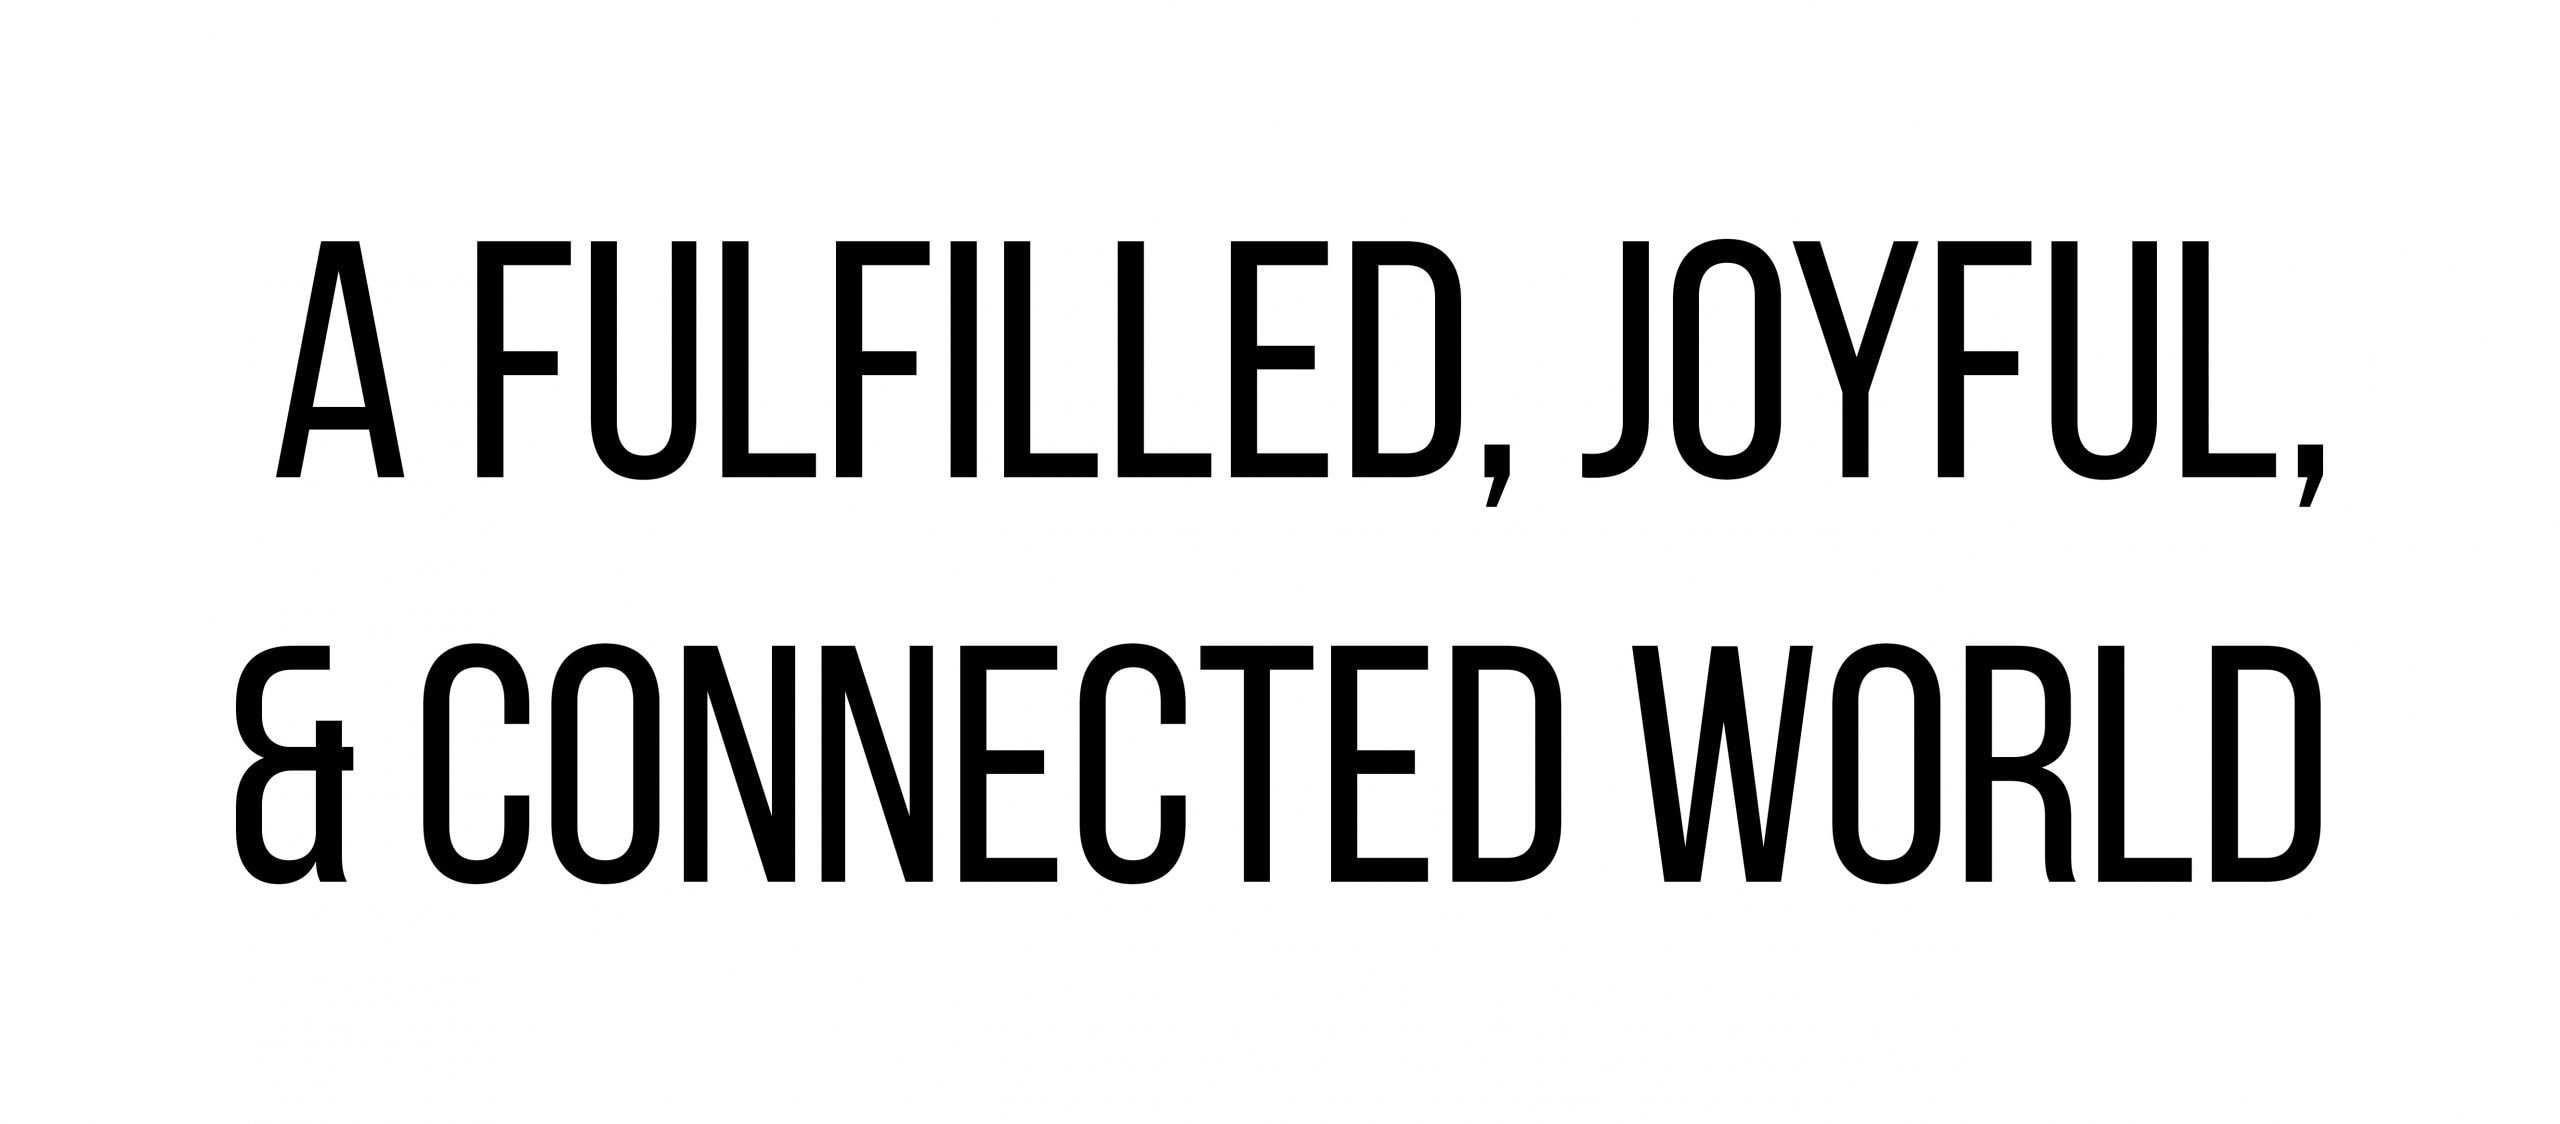 A Fullfillied, Joyful, & Connected World